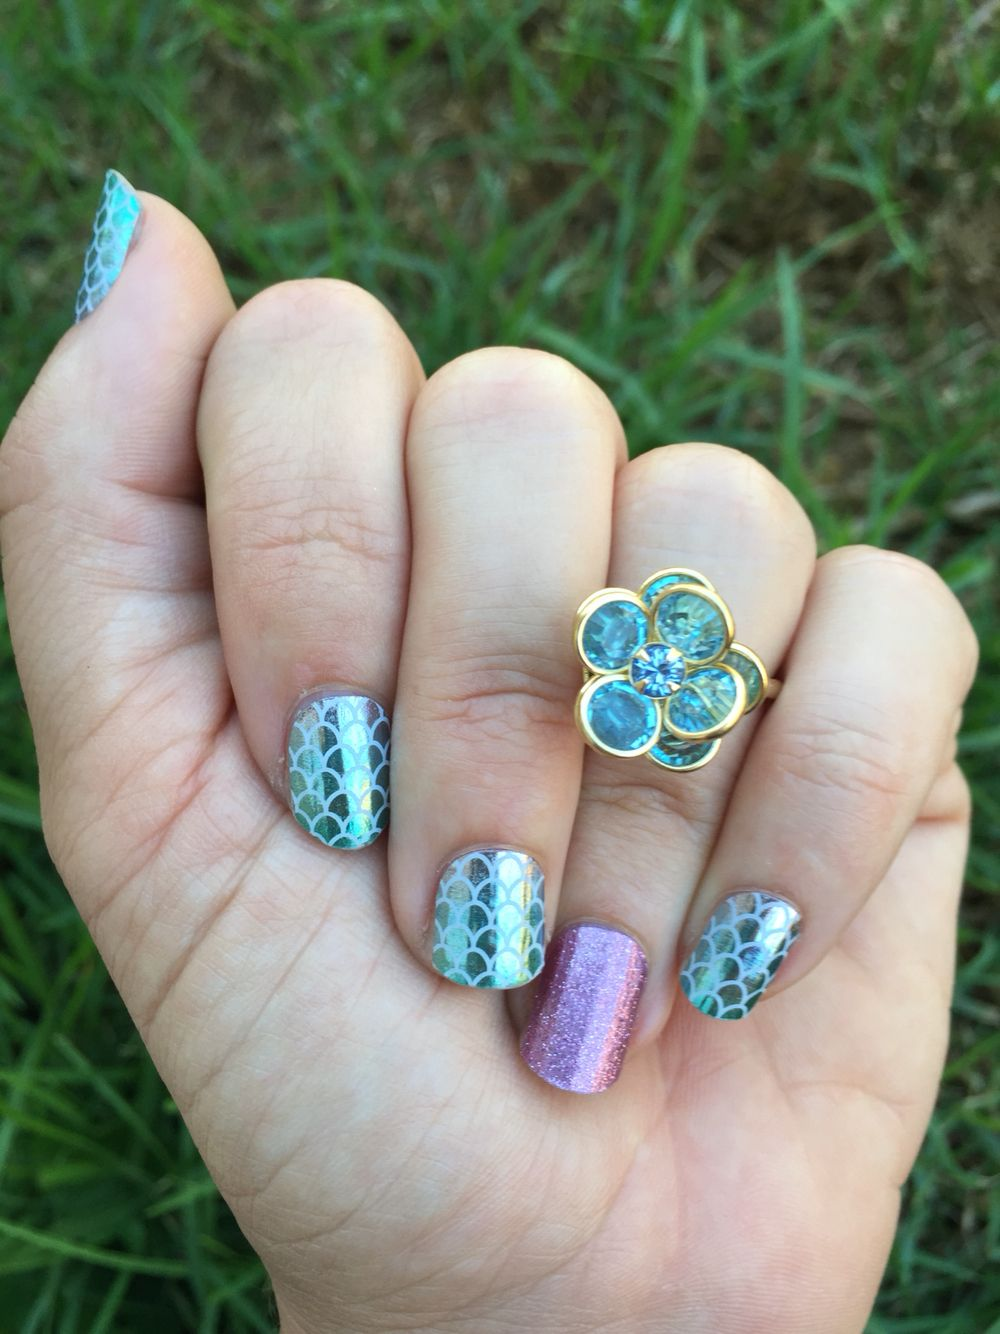 Mermaid tail and pixie Jamberry nails rock!!